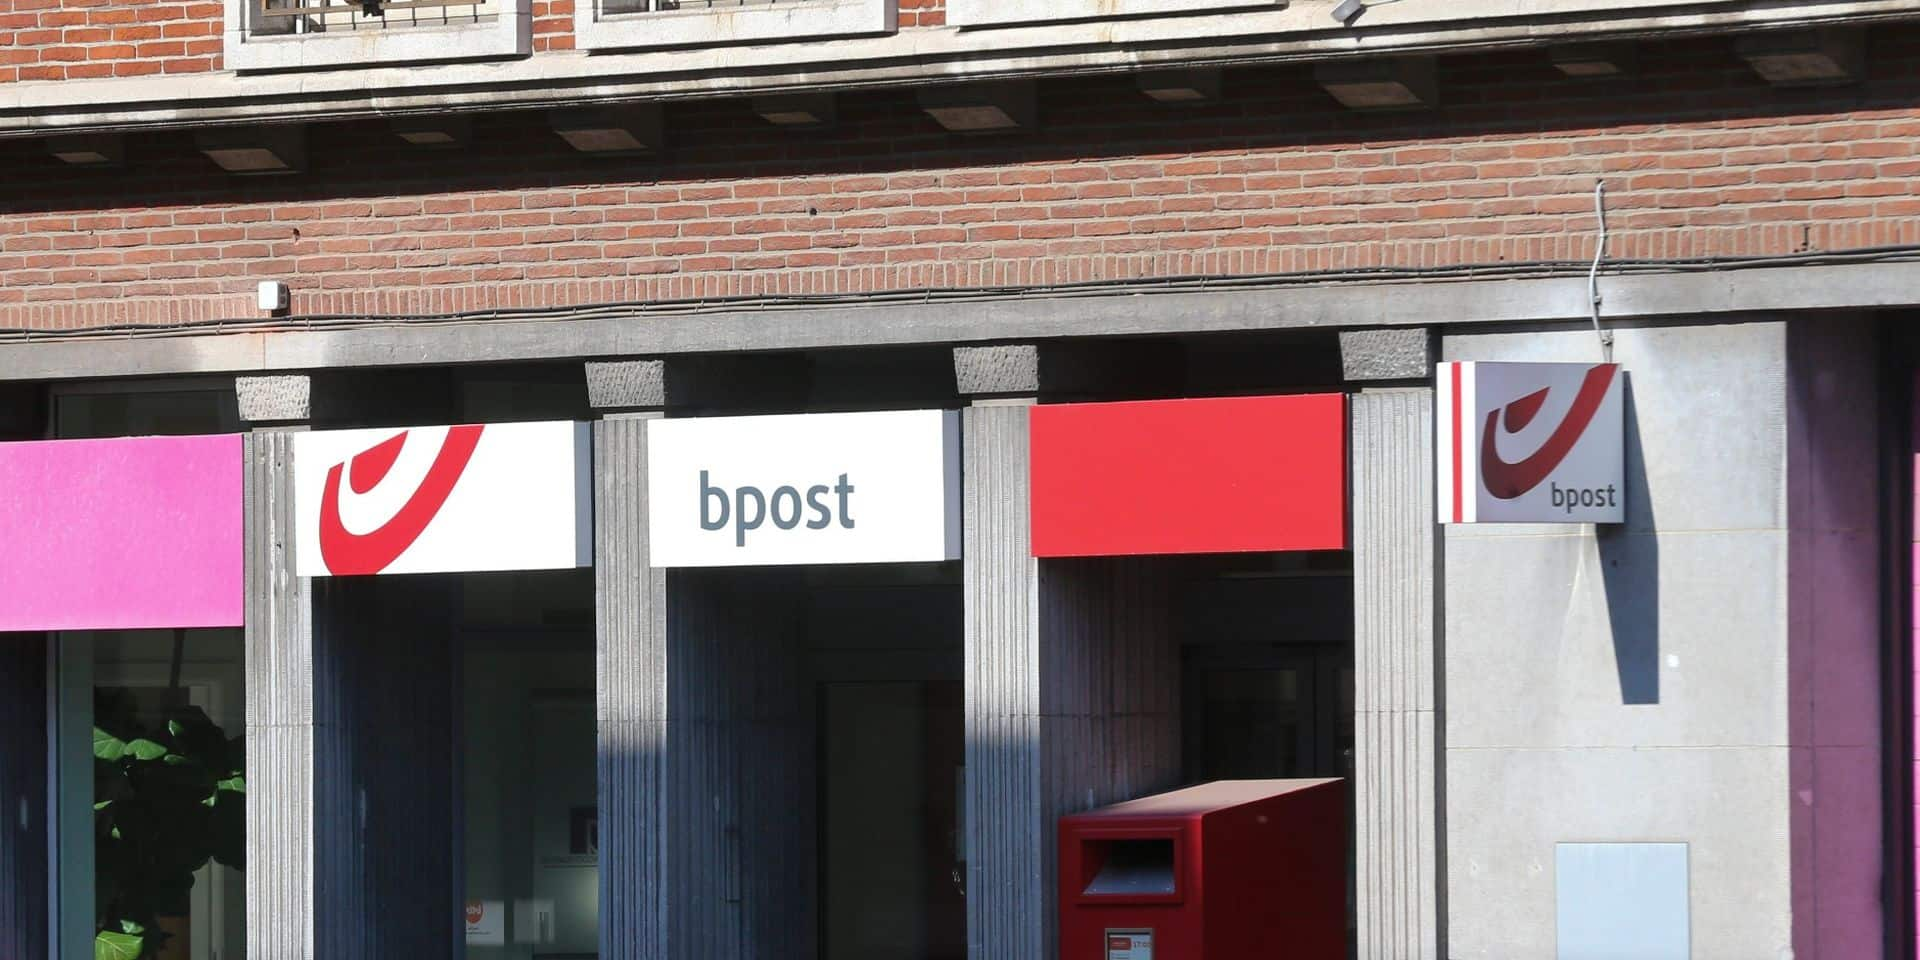 Bpost met en vente ses chaînes Press Shop et Relay